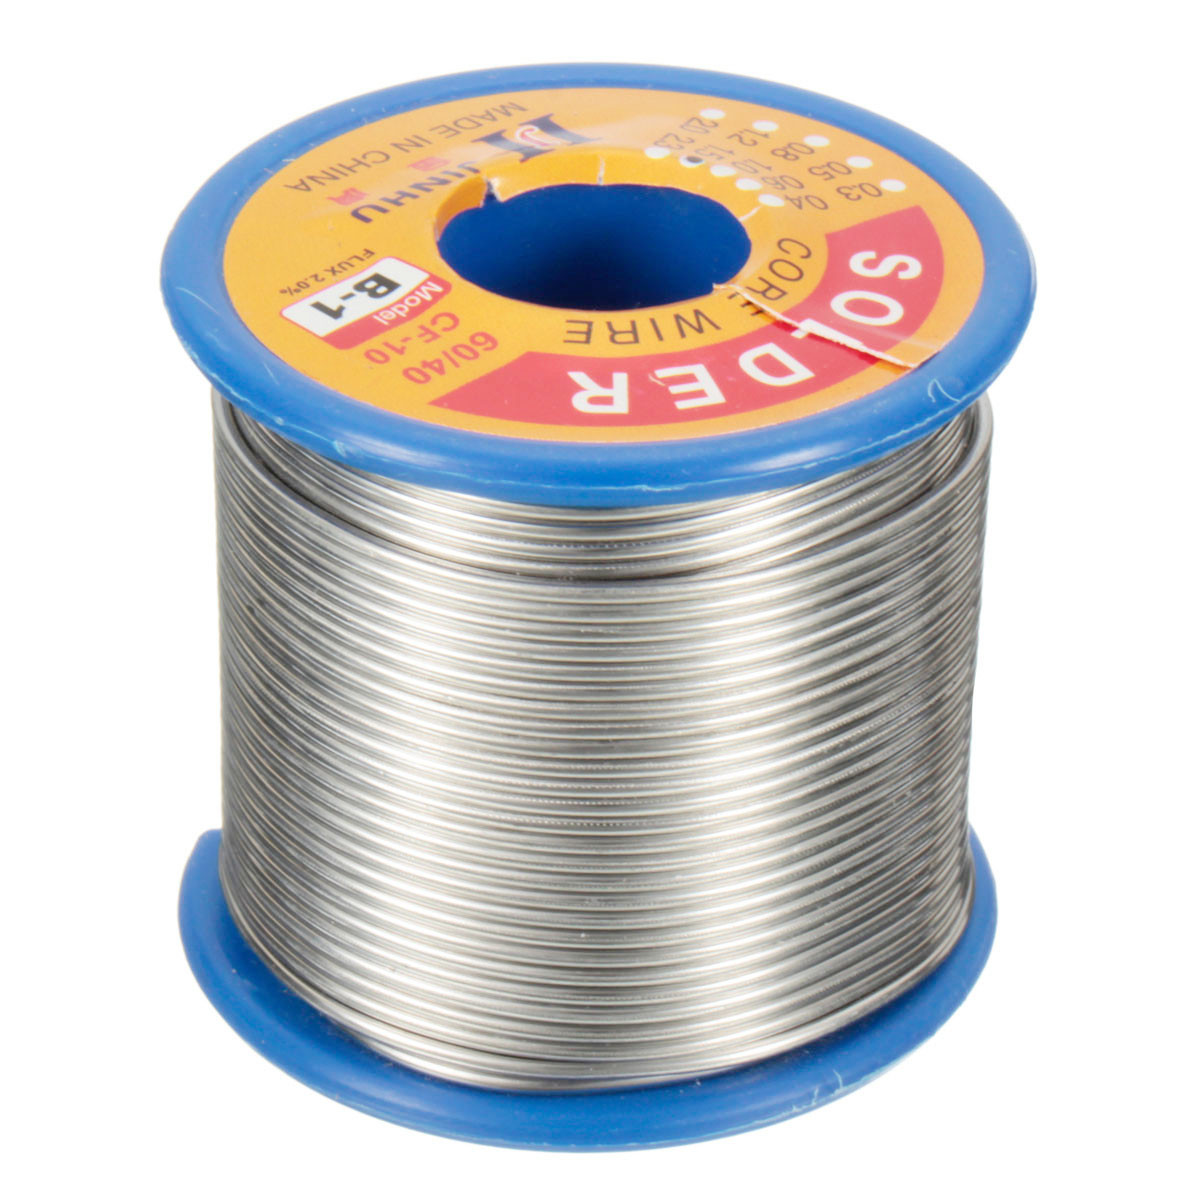 Welding Wires 500g 1.5mm 60/40 FLUX  2.0% 45FT Tin Lead Tin Wire Melt Rosin Core Solder Soldering Wire Roll